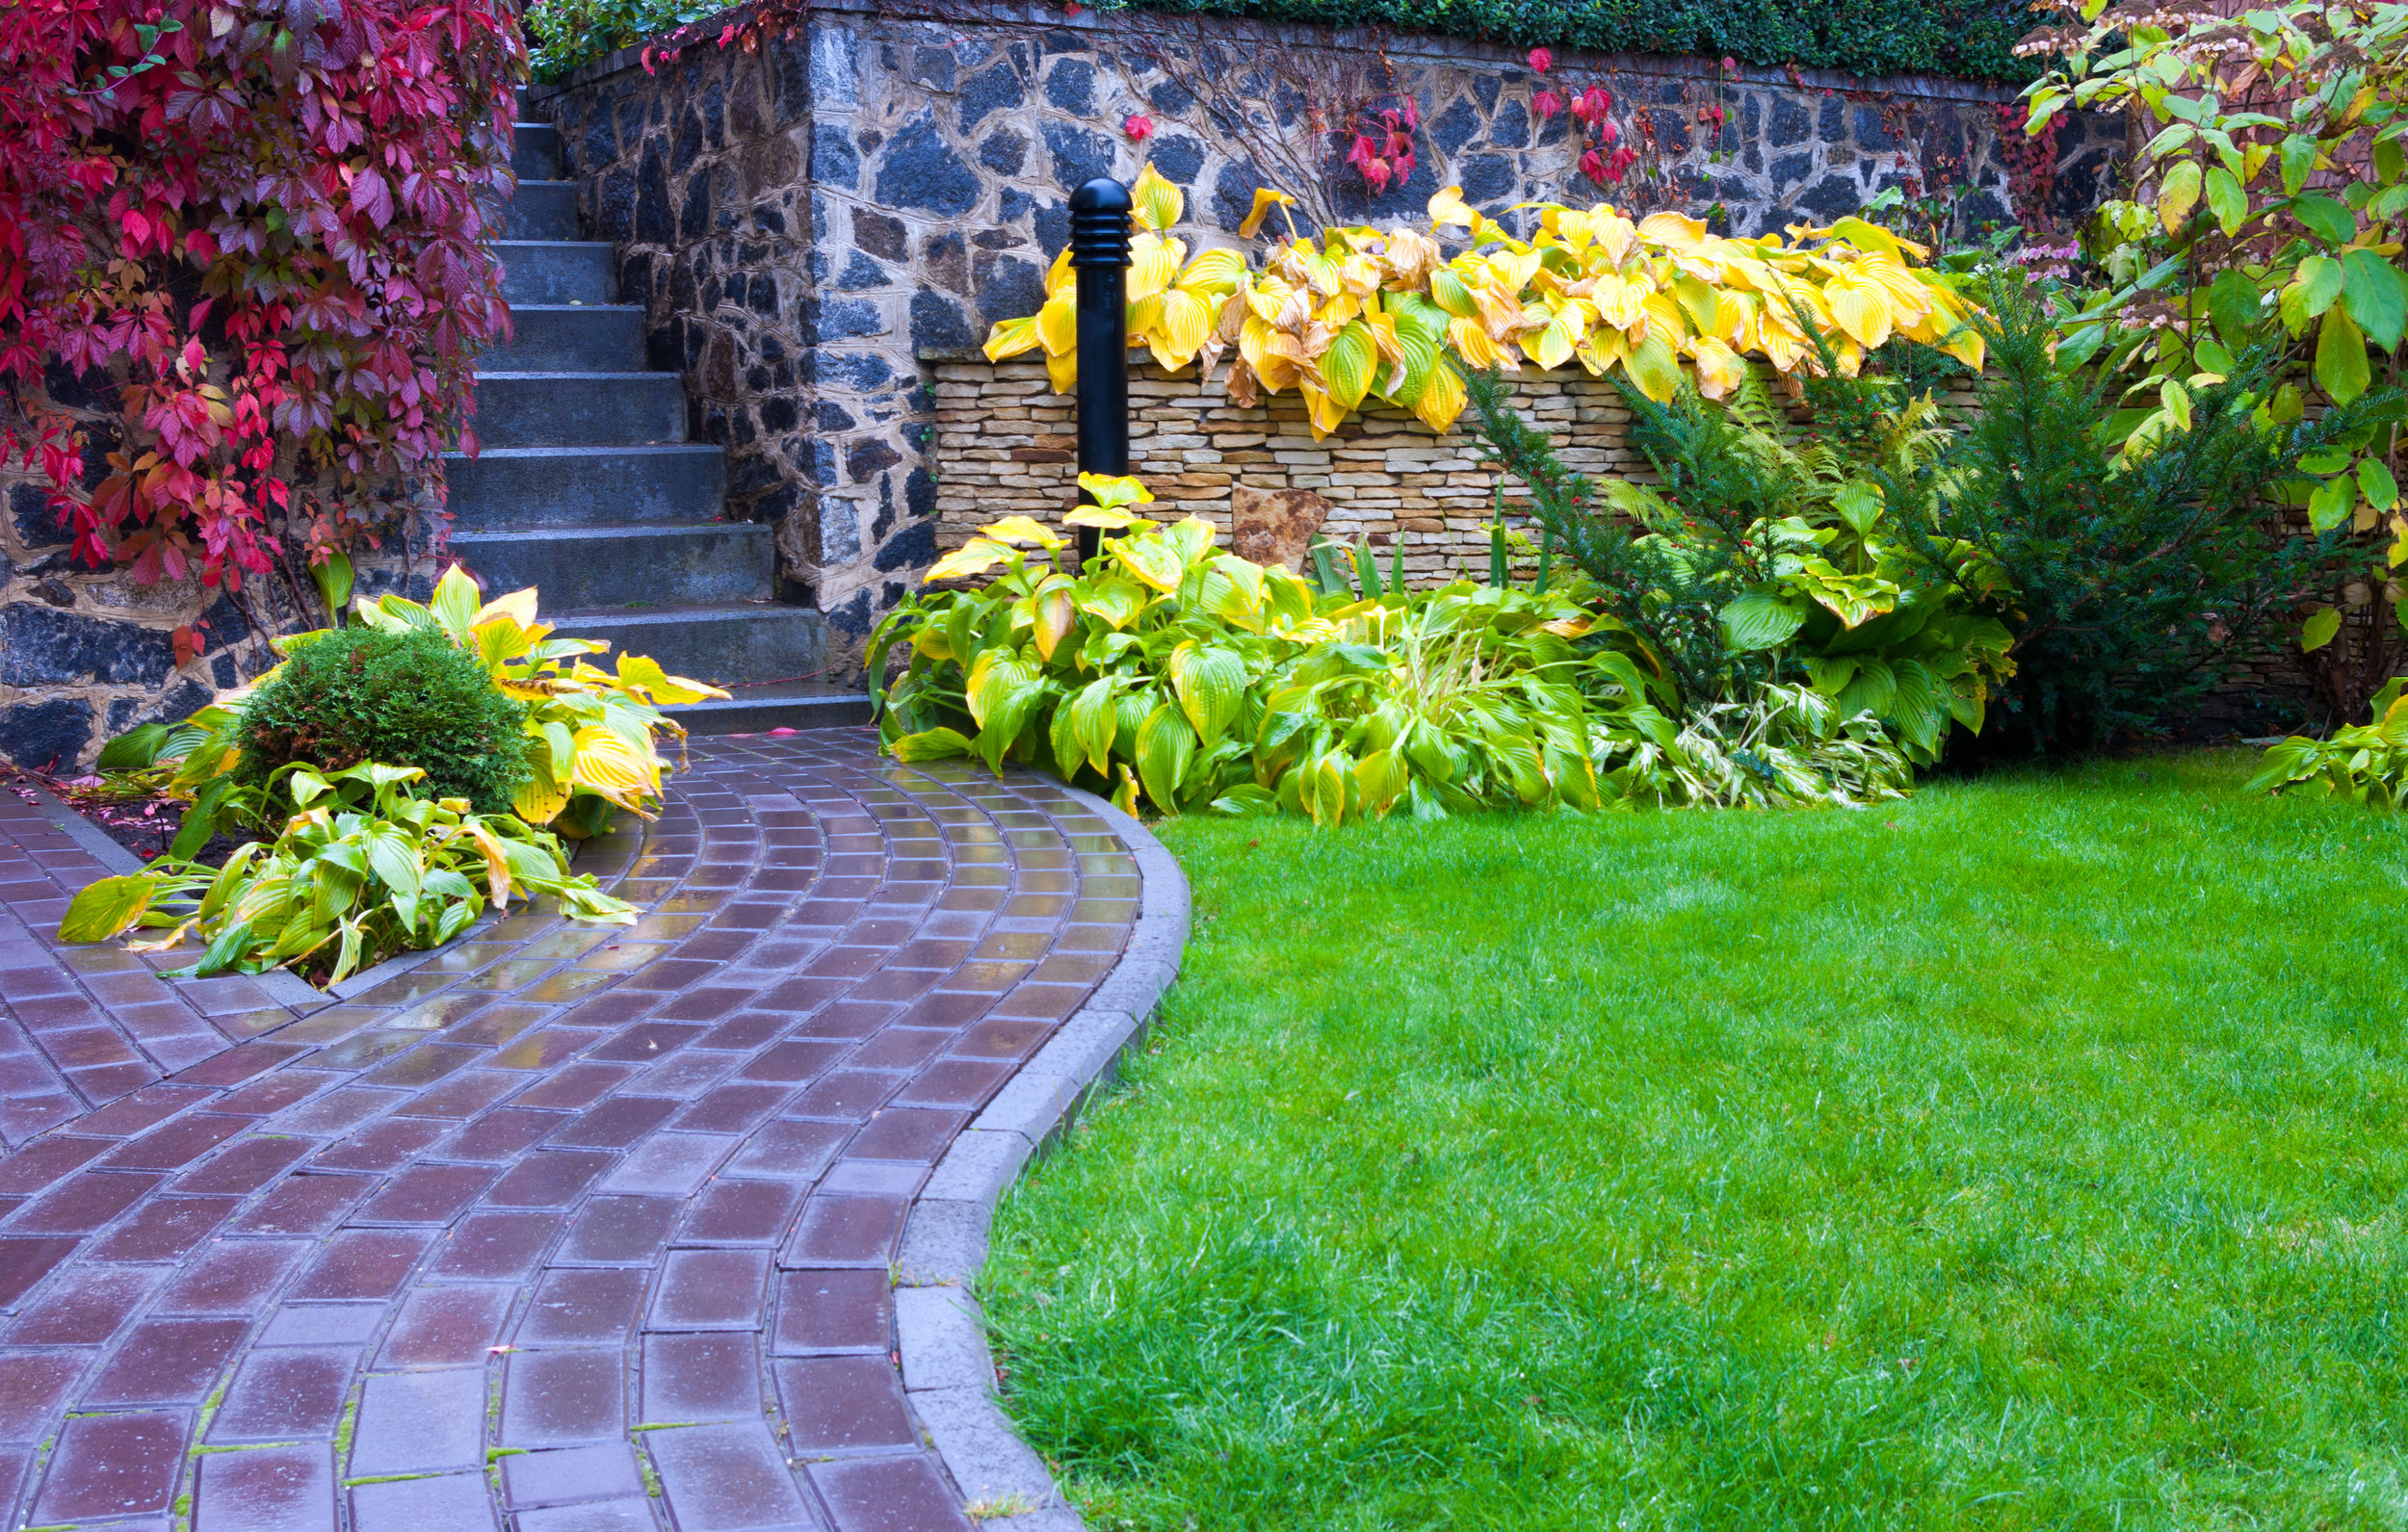 4 Wonderful Landscaping Ideas for Small Front Yards in ... on Small Yard Landscaping Ideas id=95149